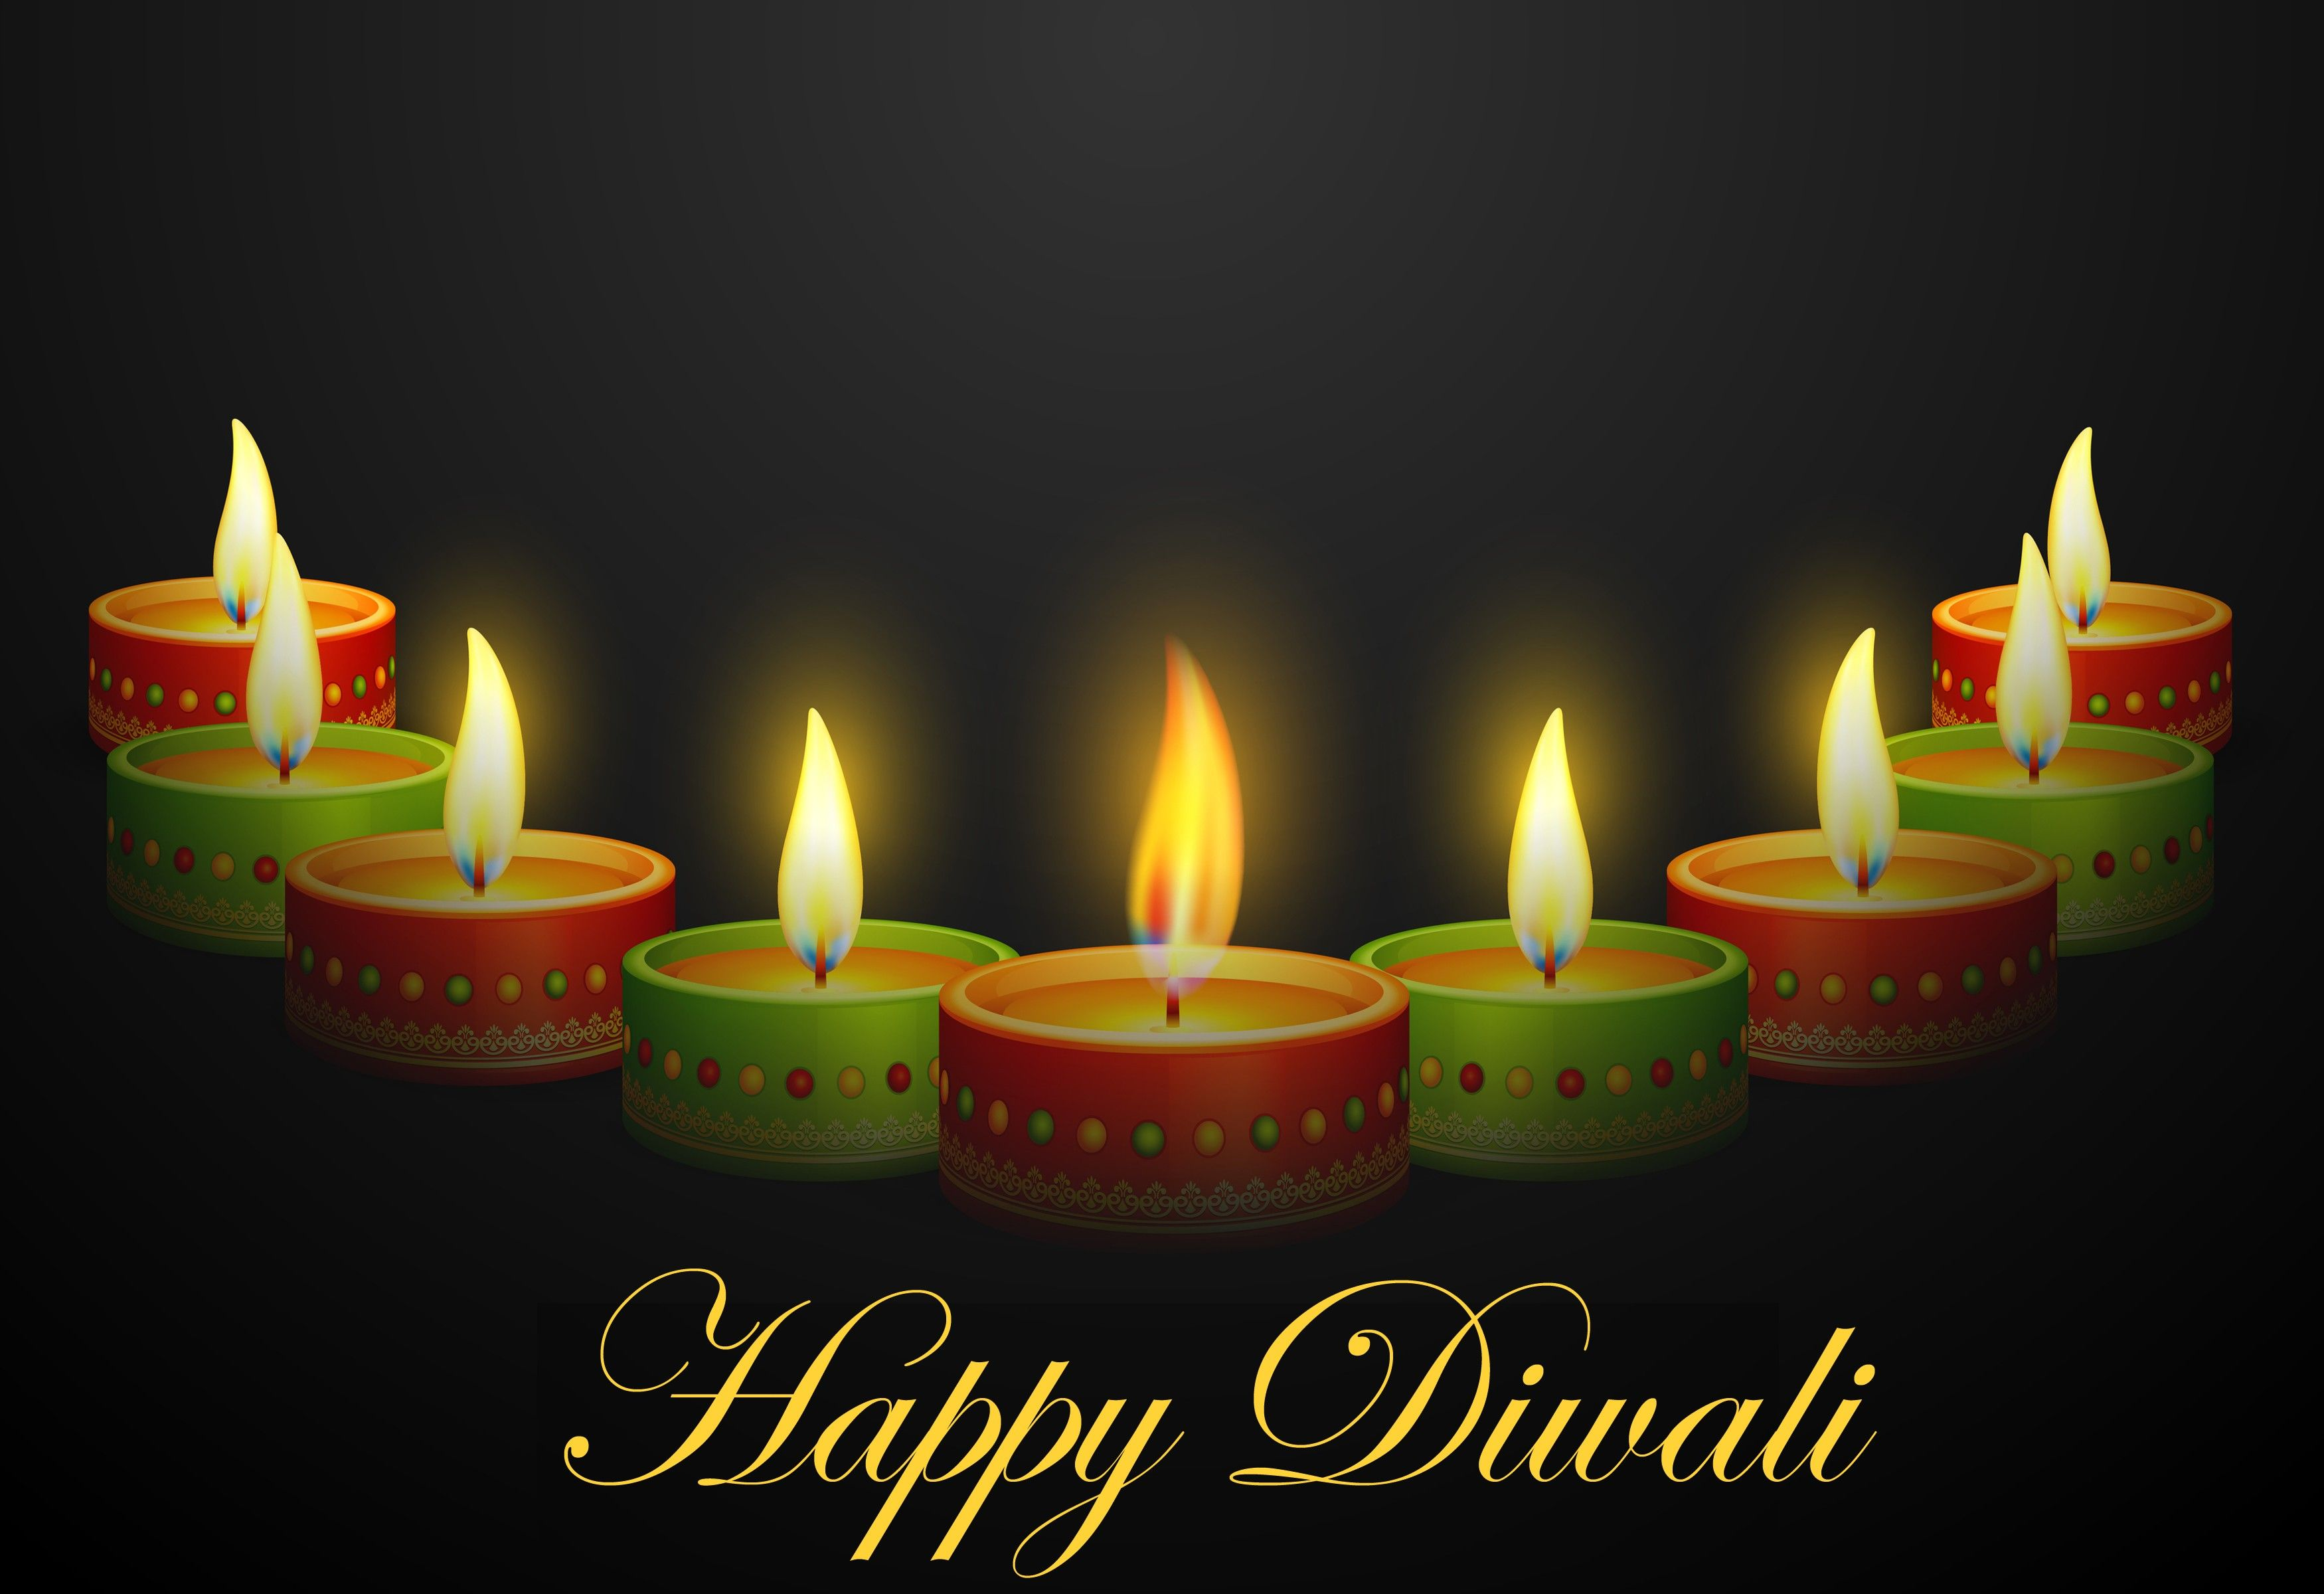 Happy Diwali Greetings With Diya Happy Diwali Greetings Wishes